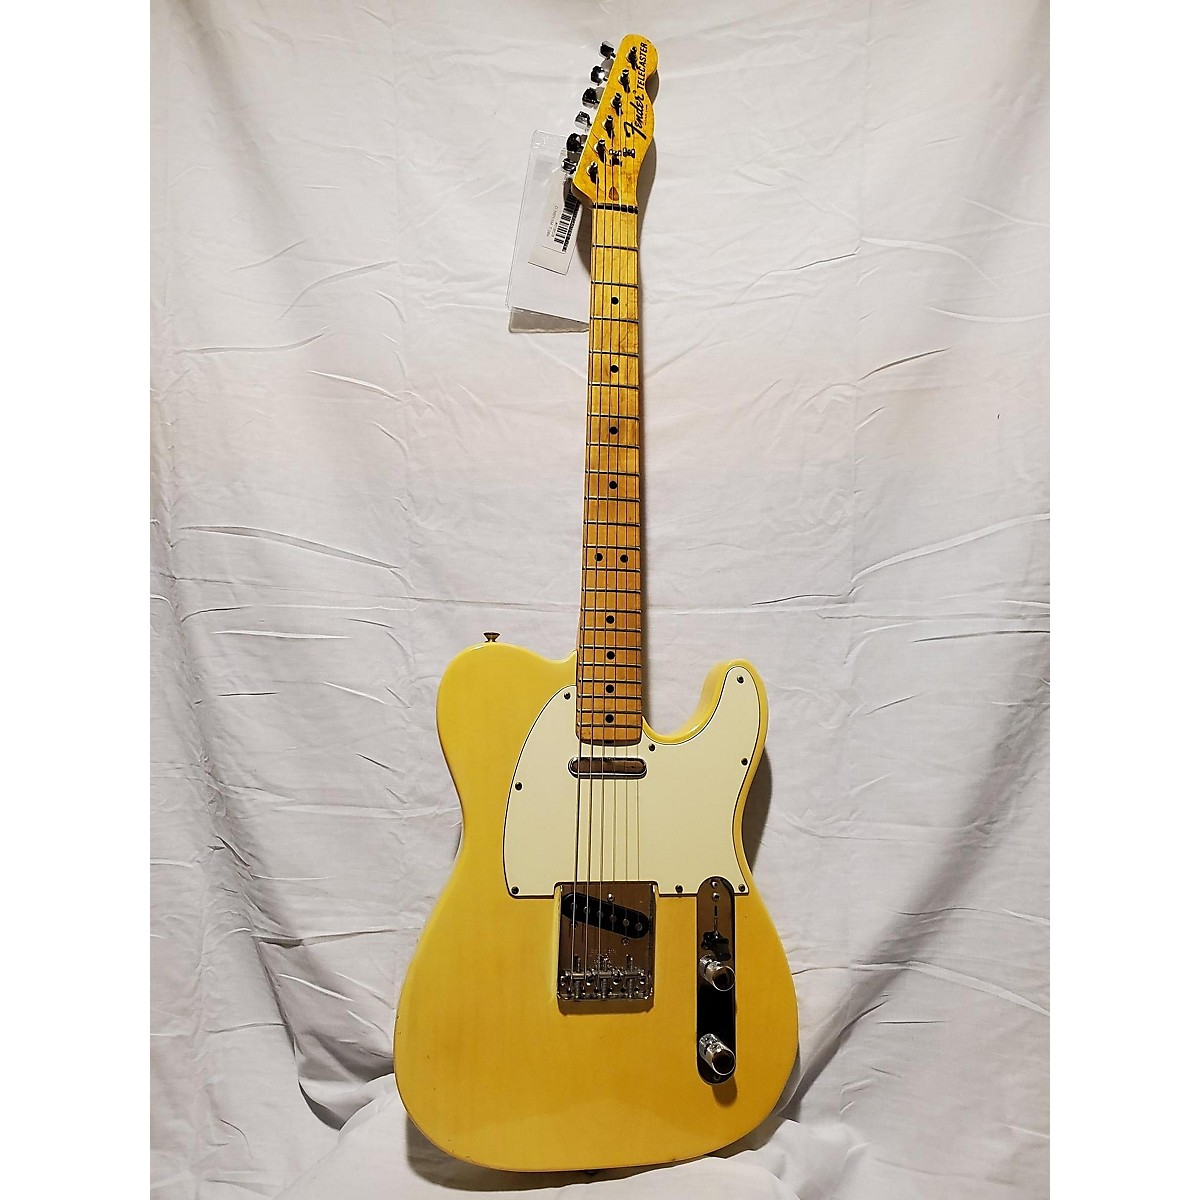 Fender 1975 Telecaster E-type Solid Body Electric Guitar